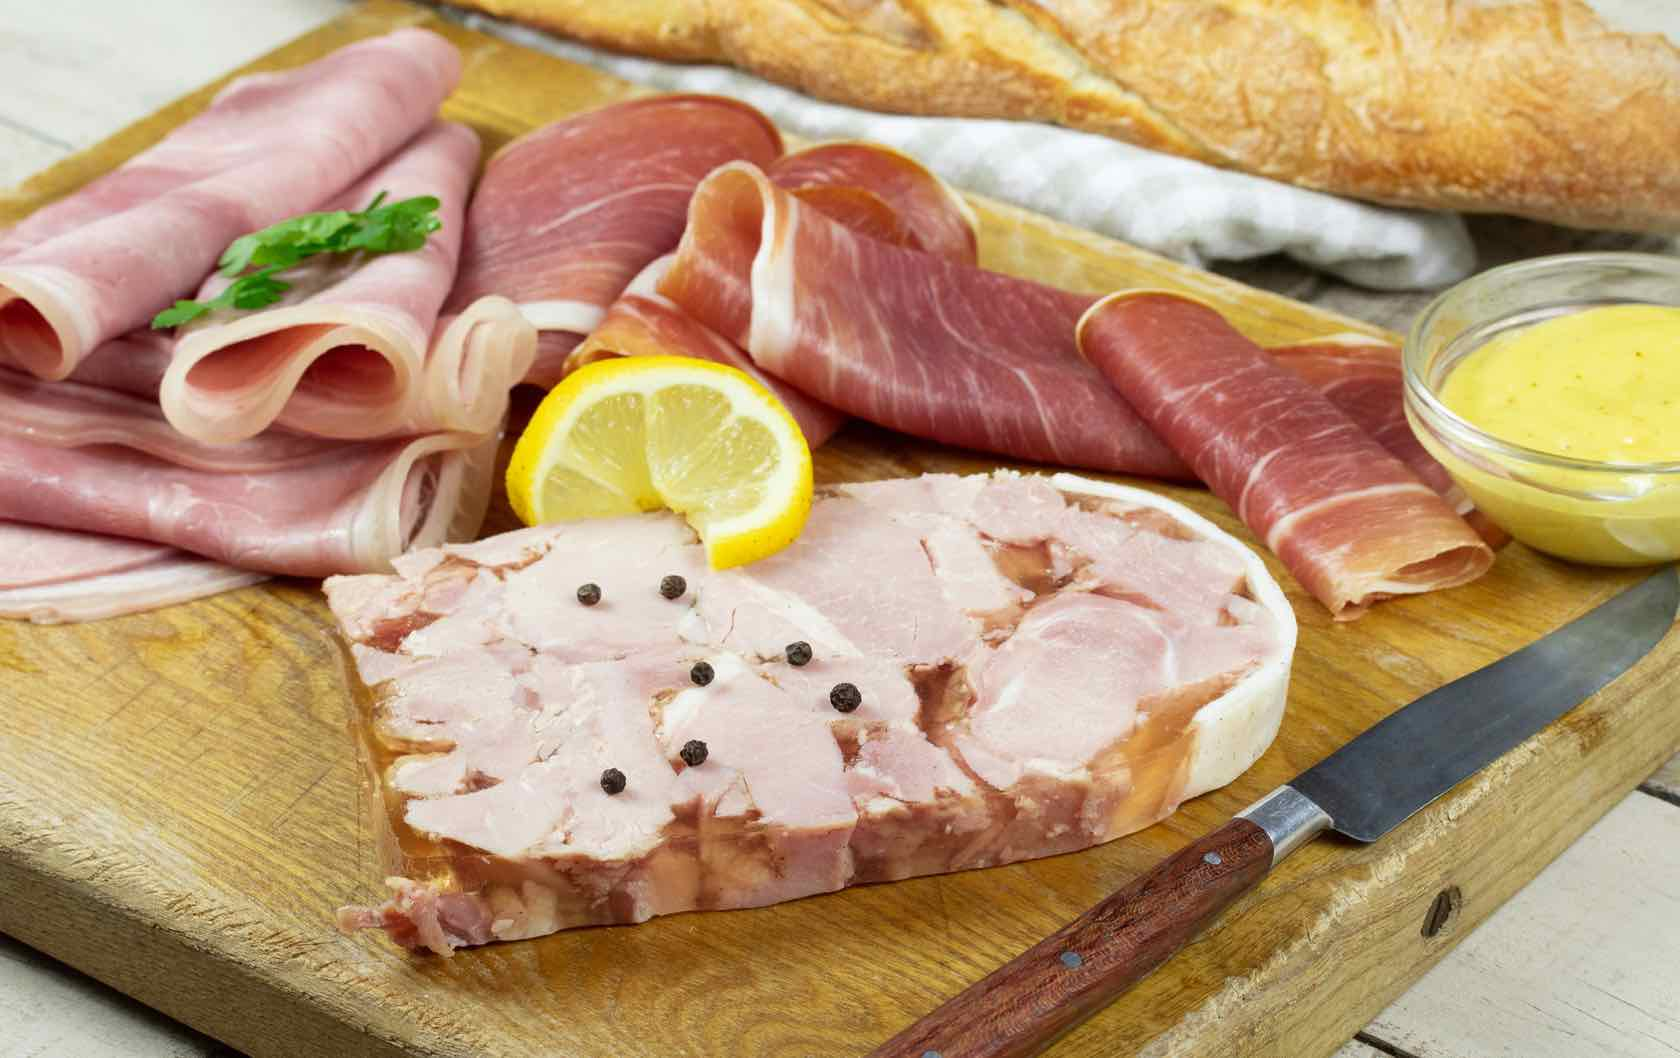 Classic Savory French Dishes Charcuterie